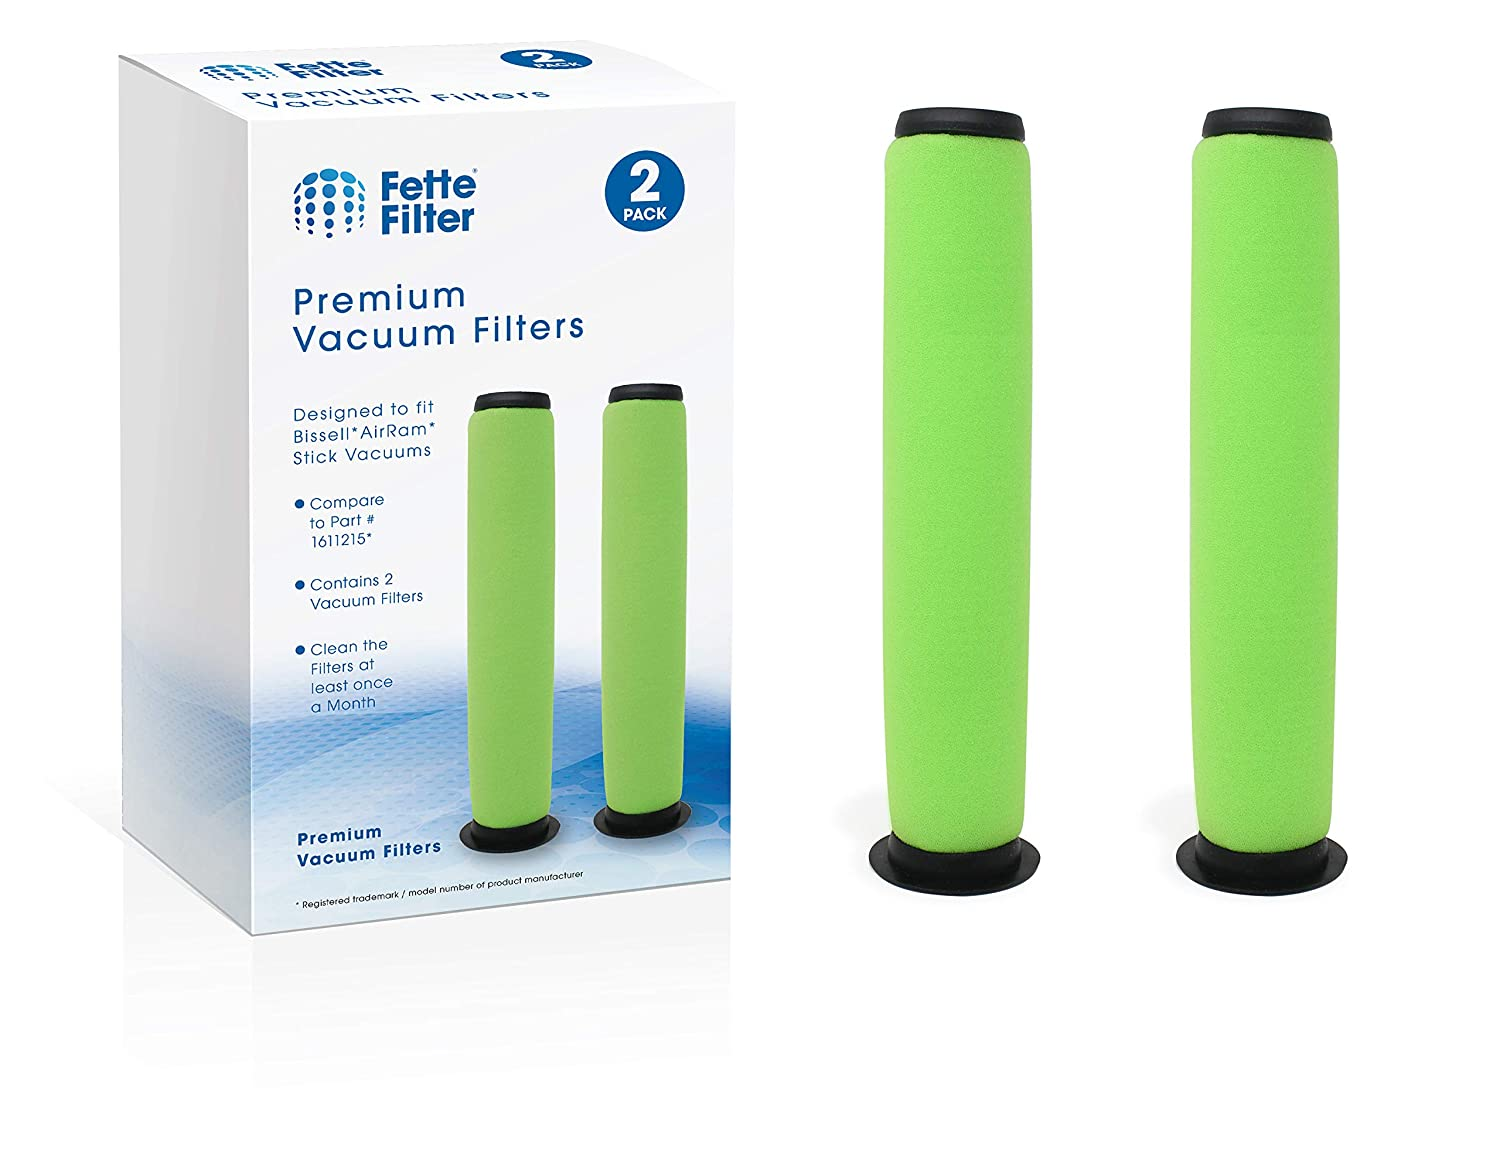 Fette Filter - Vacuum Filter Compatible with Bissell AirRam. Compare to Part # 1611215. (Pack of 2)